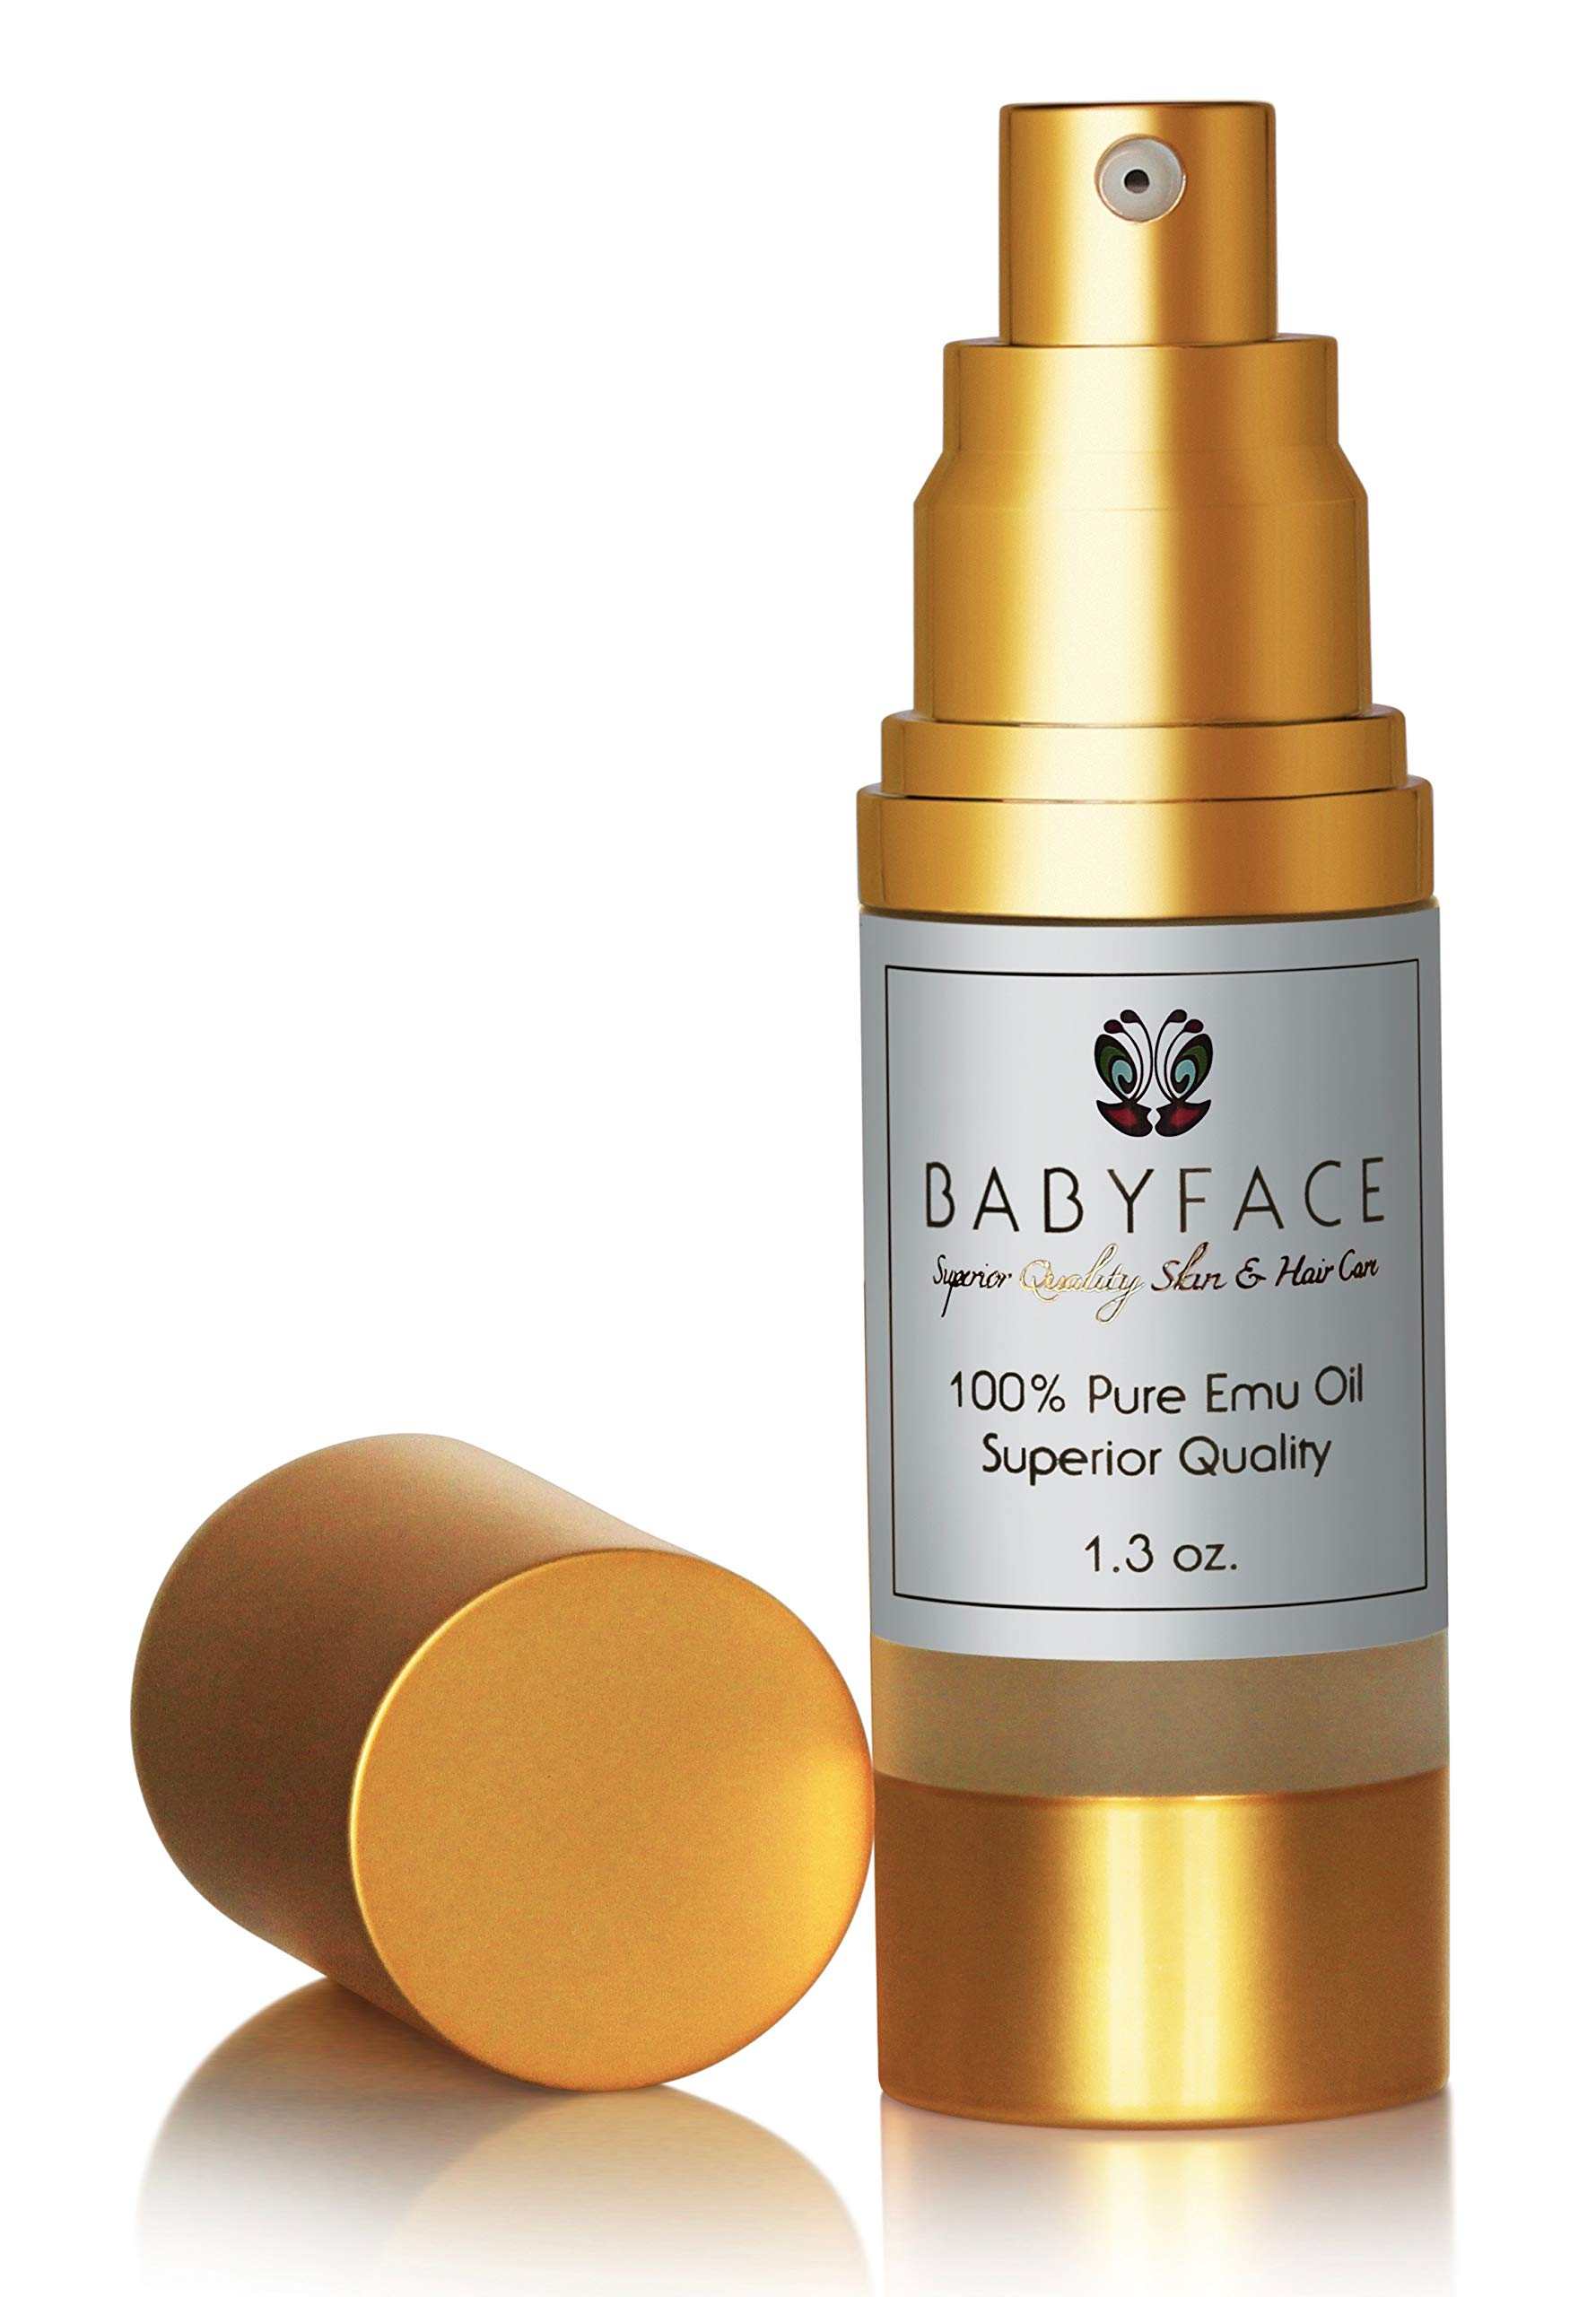 Babyface Emu Oil- Premium, Cosmetic Grade for Dry Skin, Rashes, Sensitive Eye AntiAging Treatment, Tattoo Healing